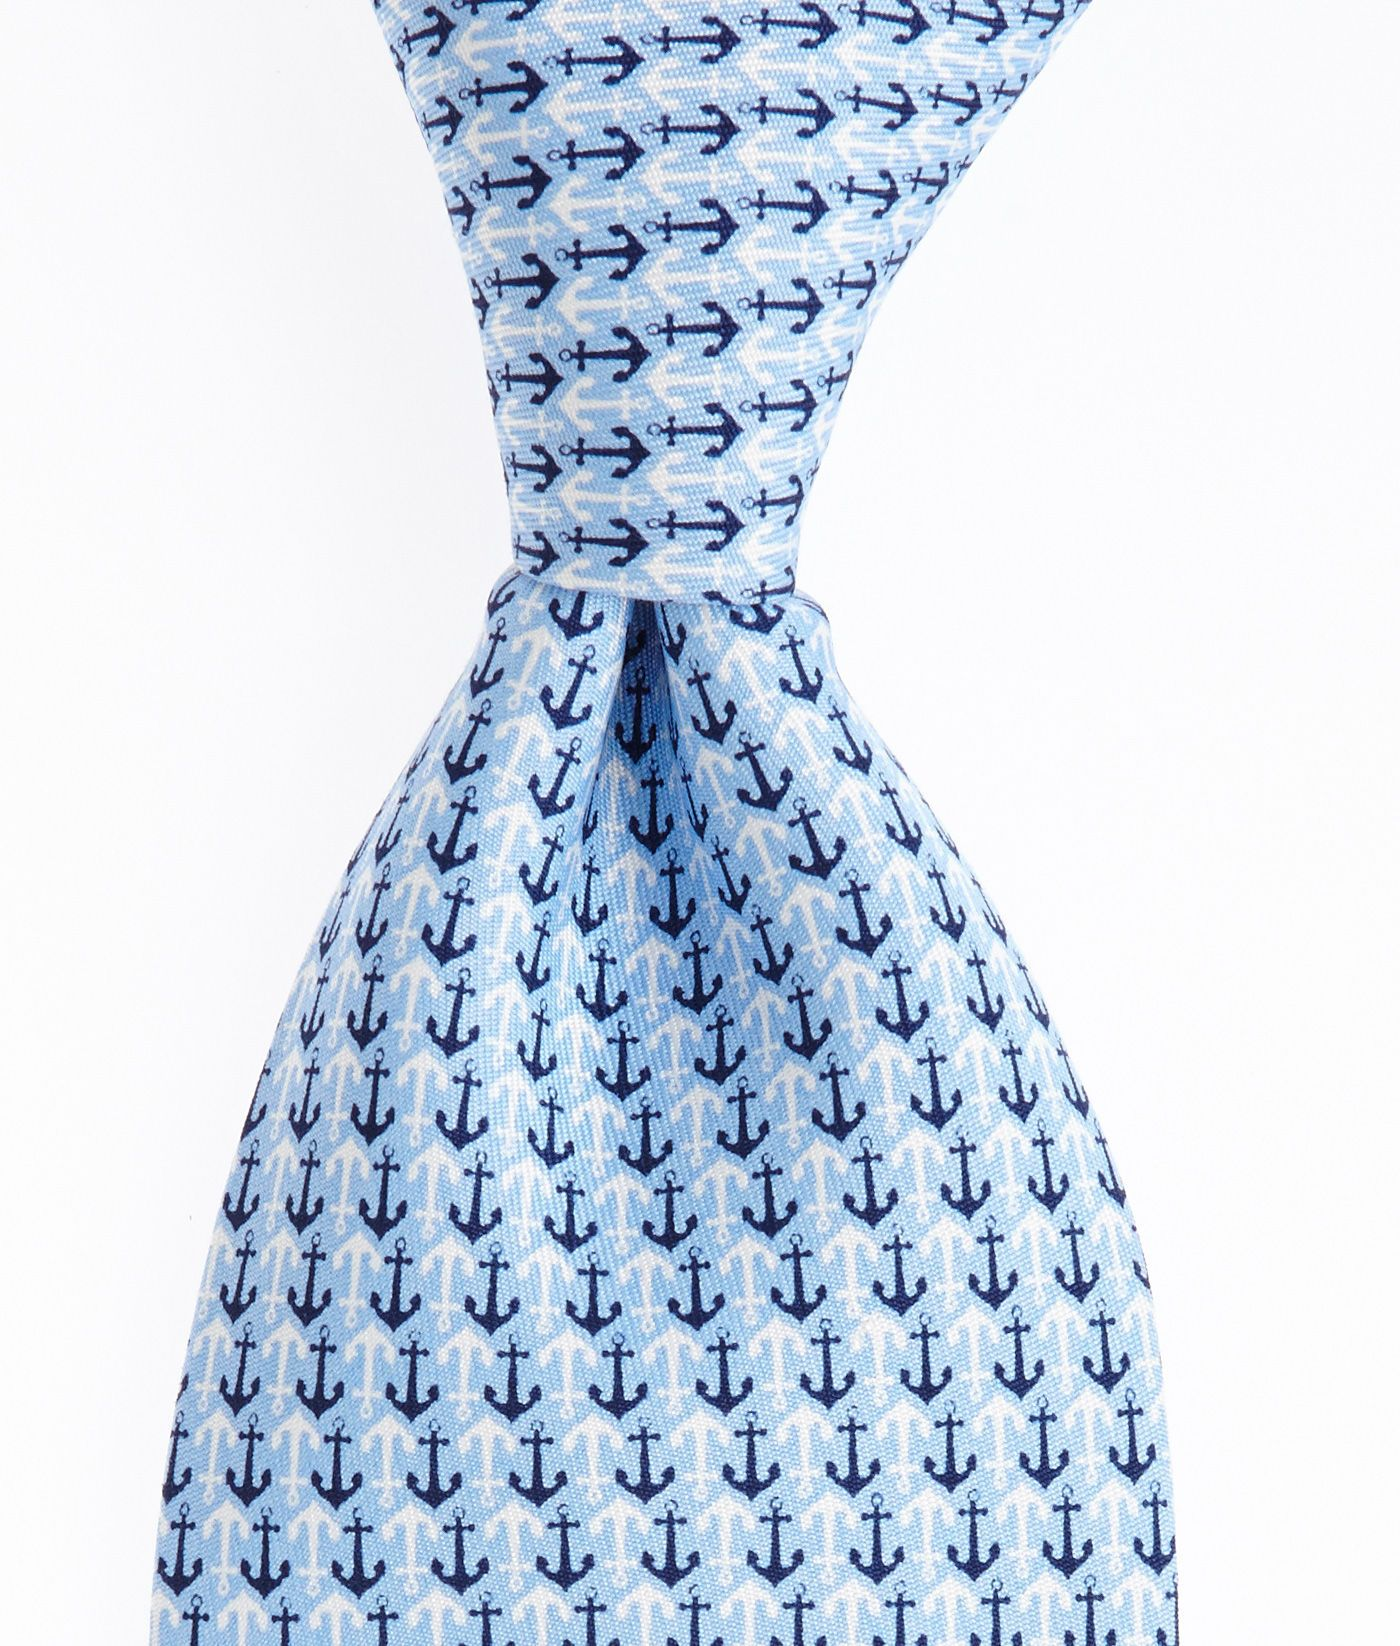 bc853d7bb0d6 Shop Silk Ties: Anchor Geo Printed Tie for Men | Vineyard Vines ...